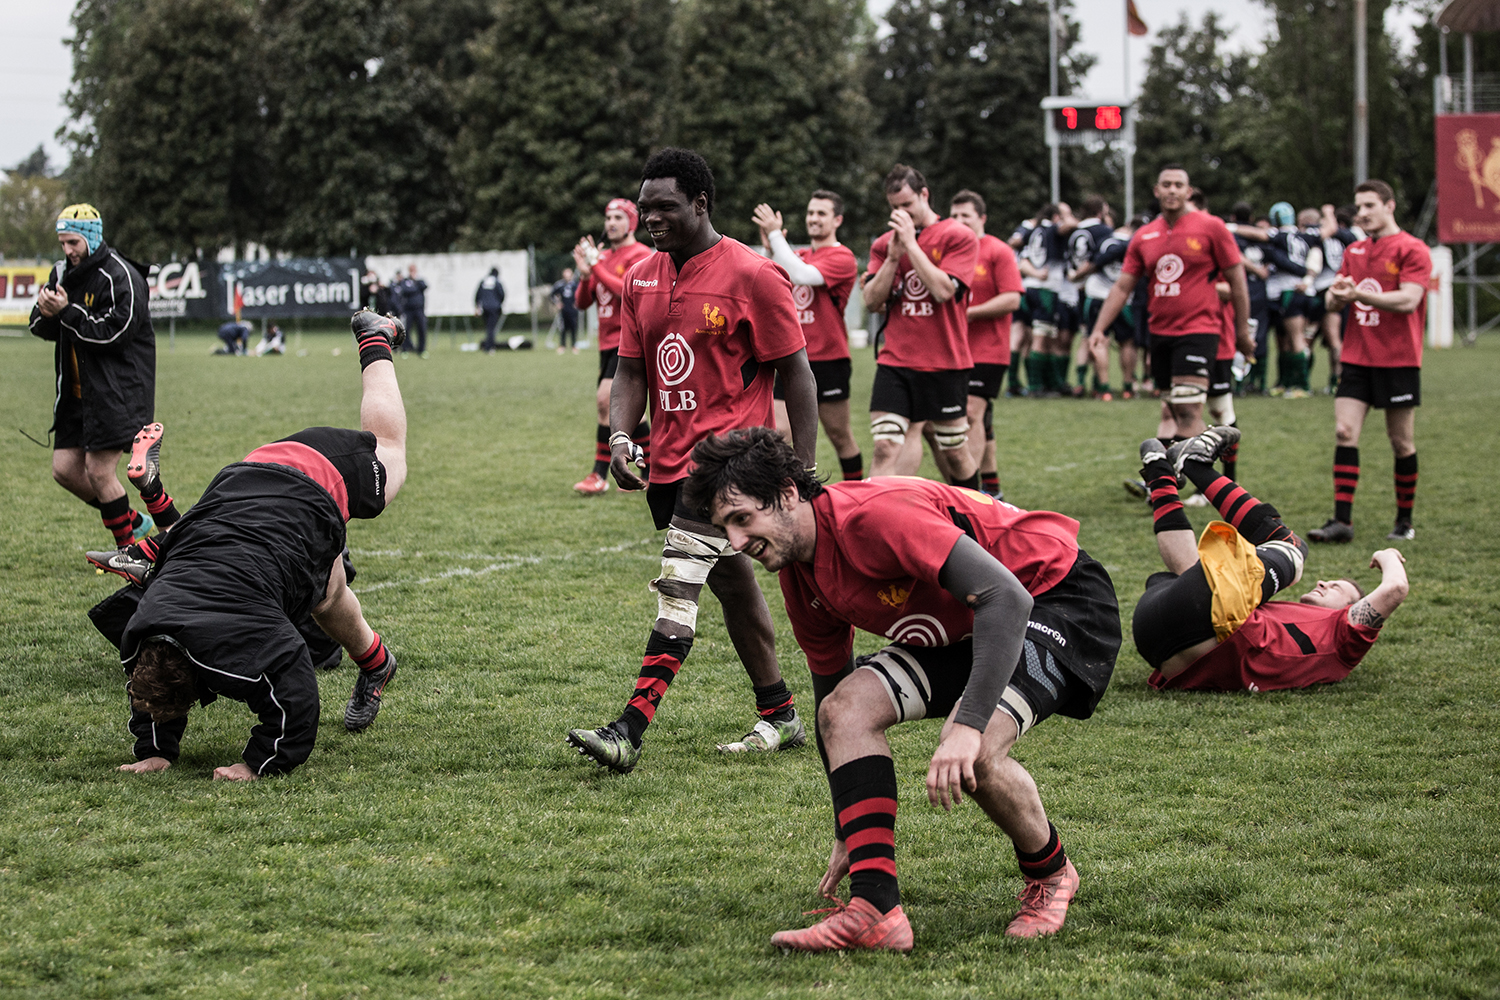 rugby_photograph_46.jpg